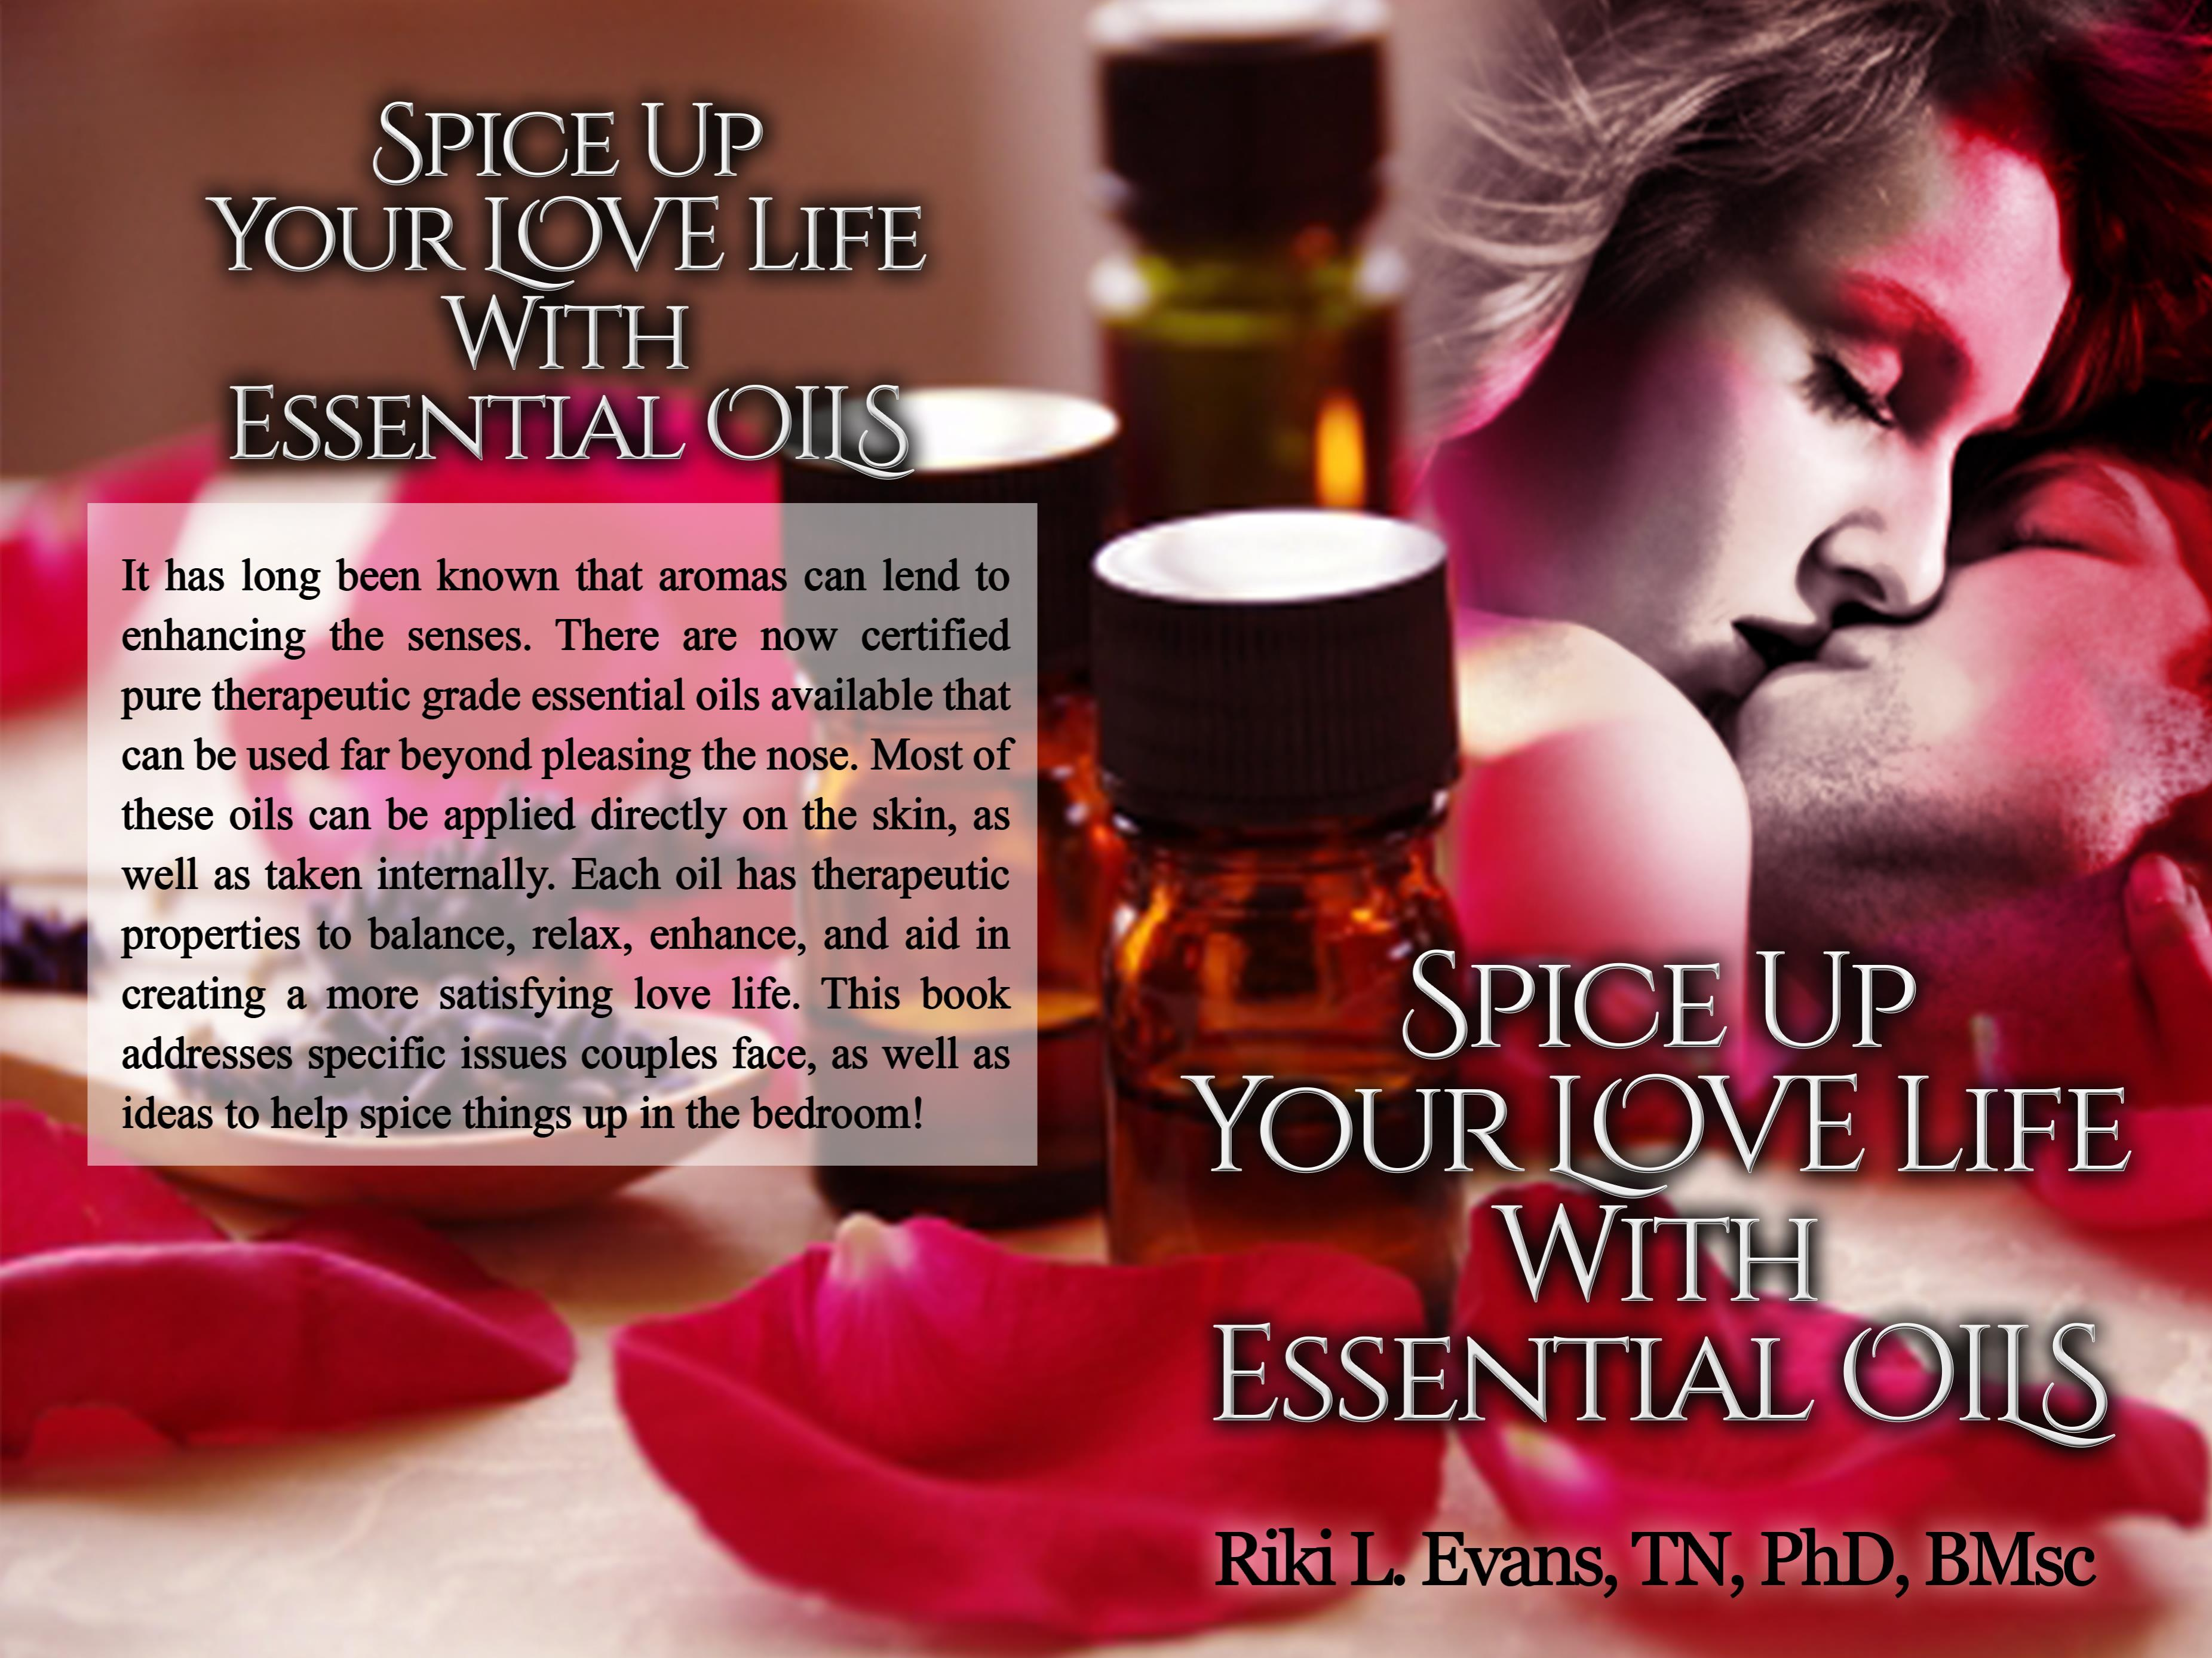 Spice Up Your Love Life With Essential Oils By Riki L Evans B Msc